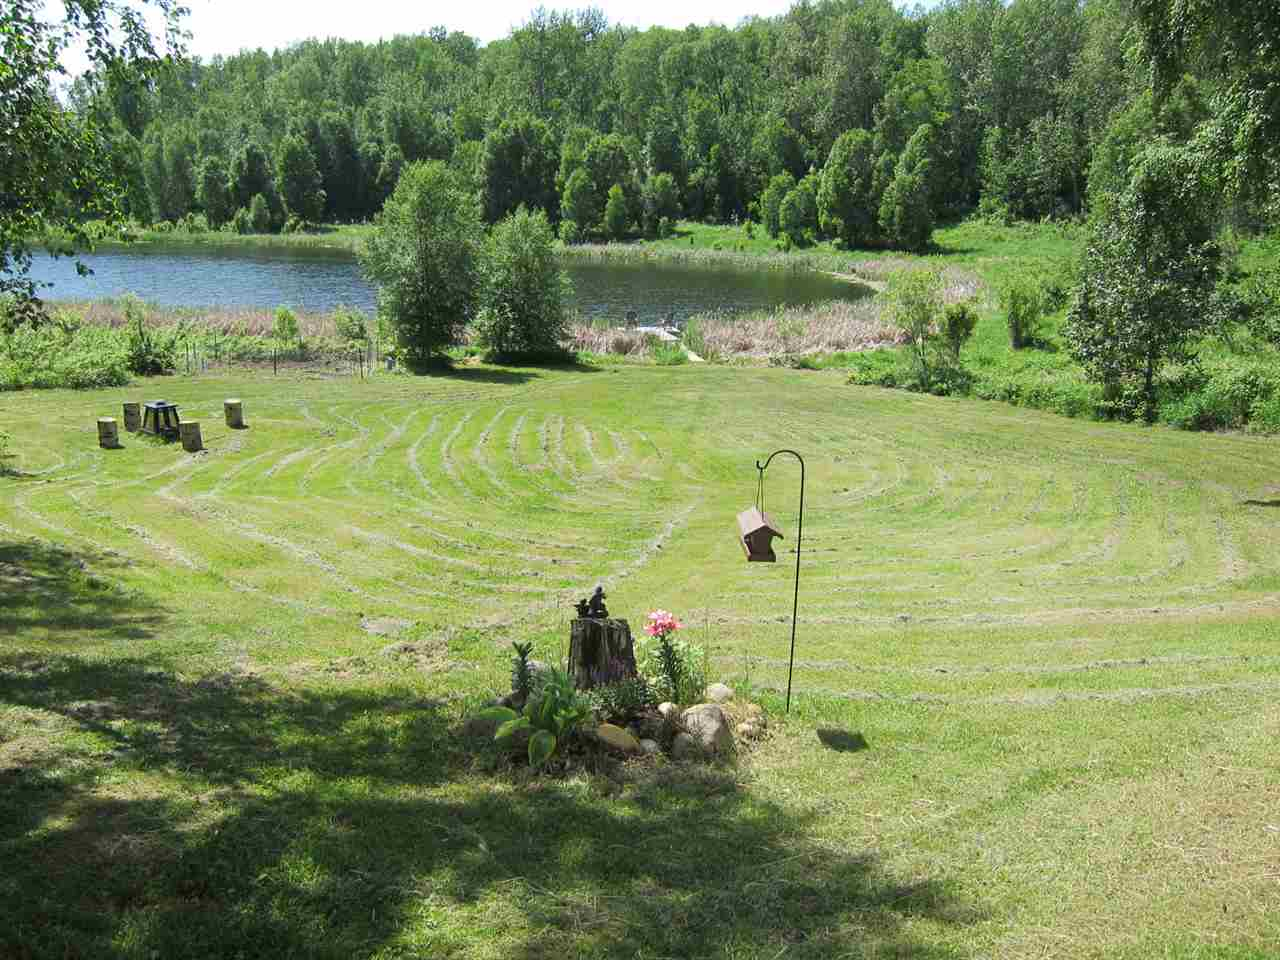 Photo 9: 1401 TWP RD 540 Road: Rural Parkland County House for sale : MLS® # E4068749